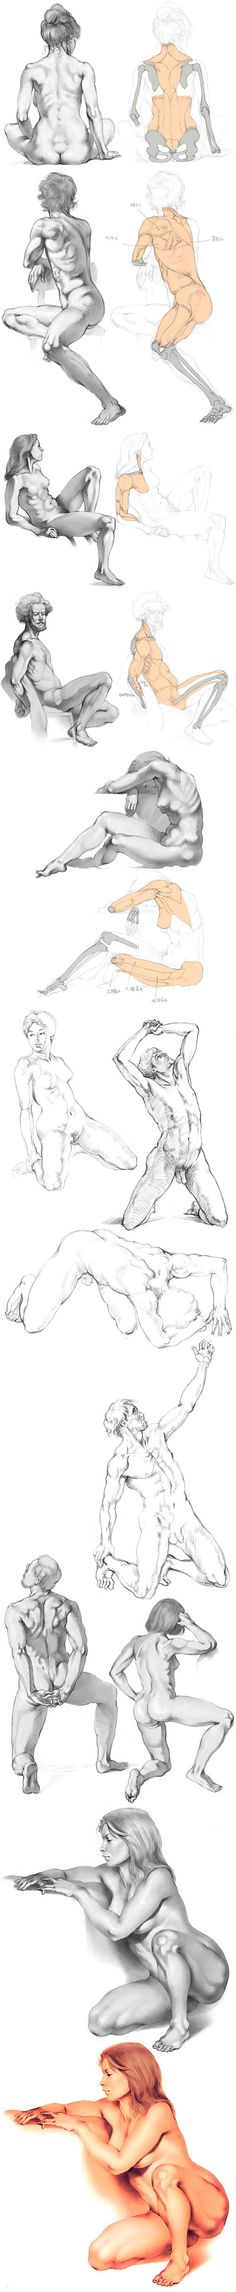 Some helpful anatomy diagrams for figure drawing. Academic Drawing, Drawing Studies, Drawing Skills, Art Studies, Life Drawing, Drawing Sketches, Painting & Drawing, Art Drawings, Anatomy Drawing